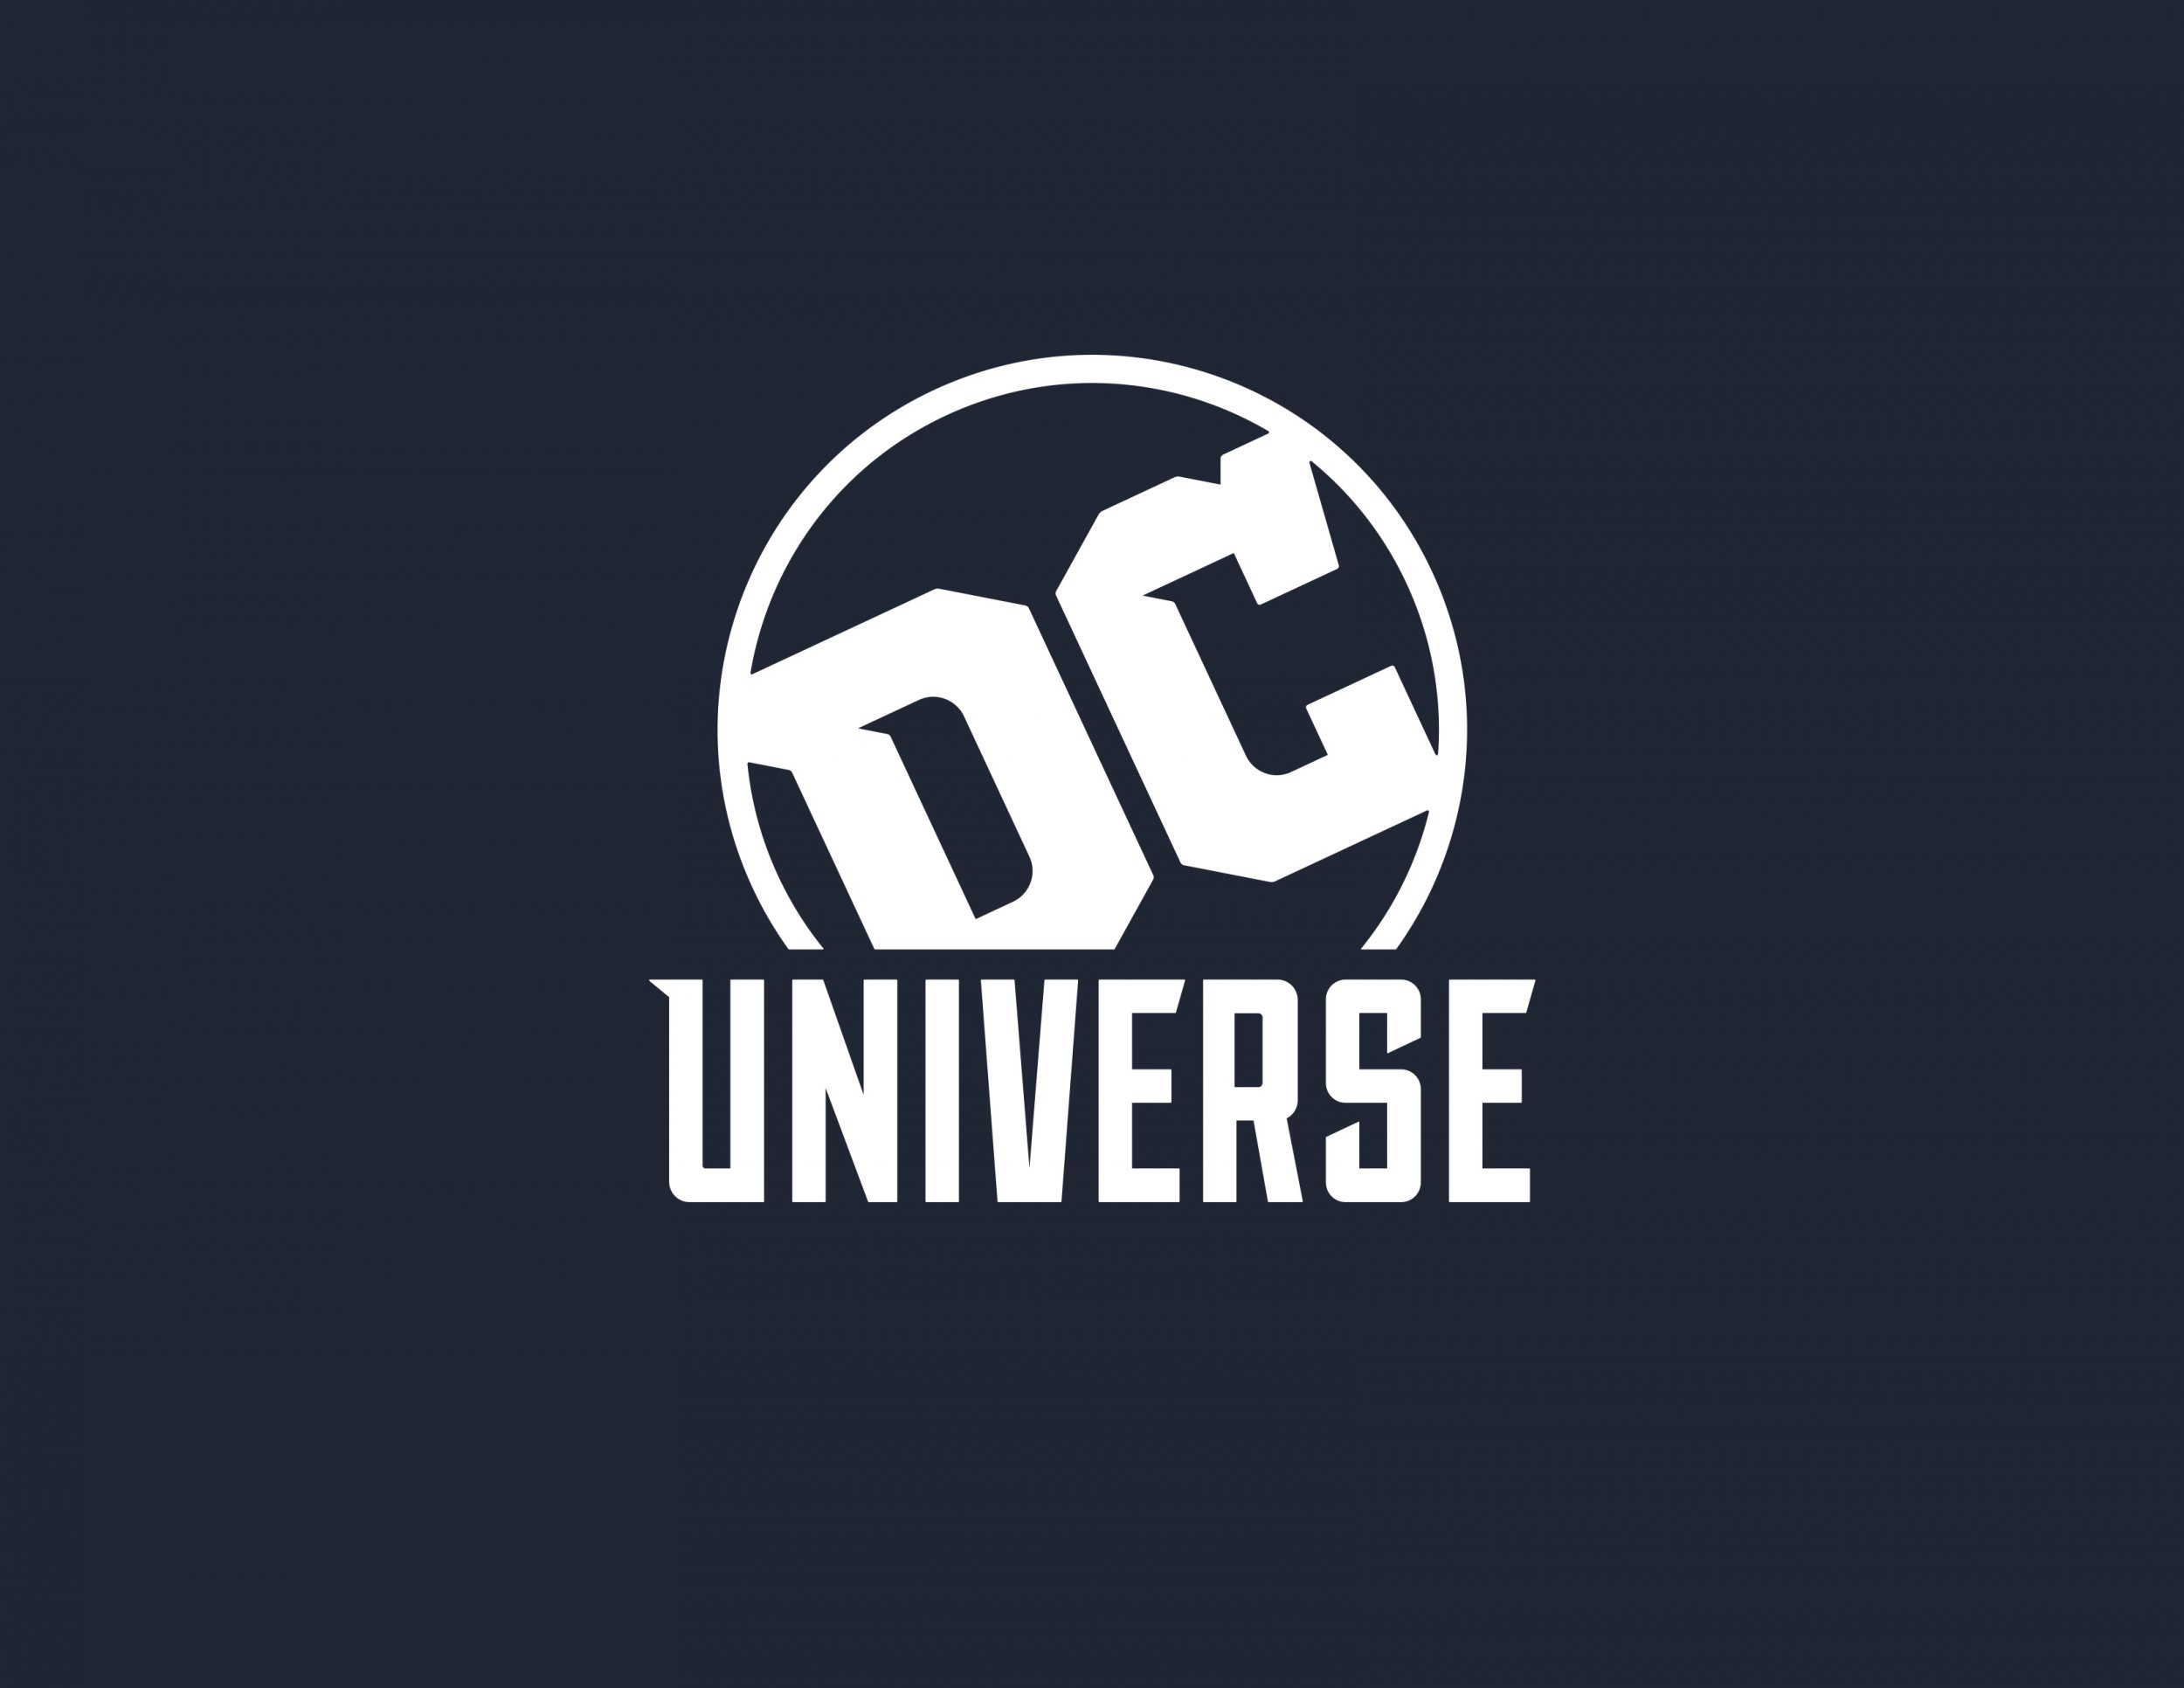 DC UNIVERSE LOGO streaming service beta